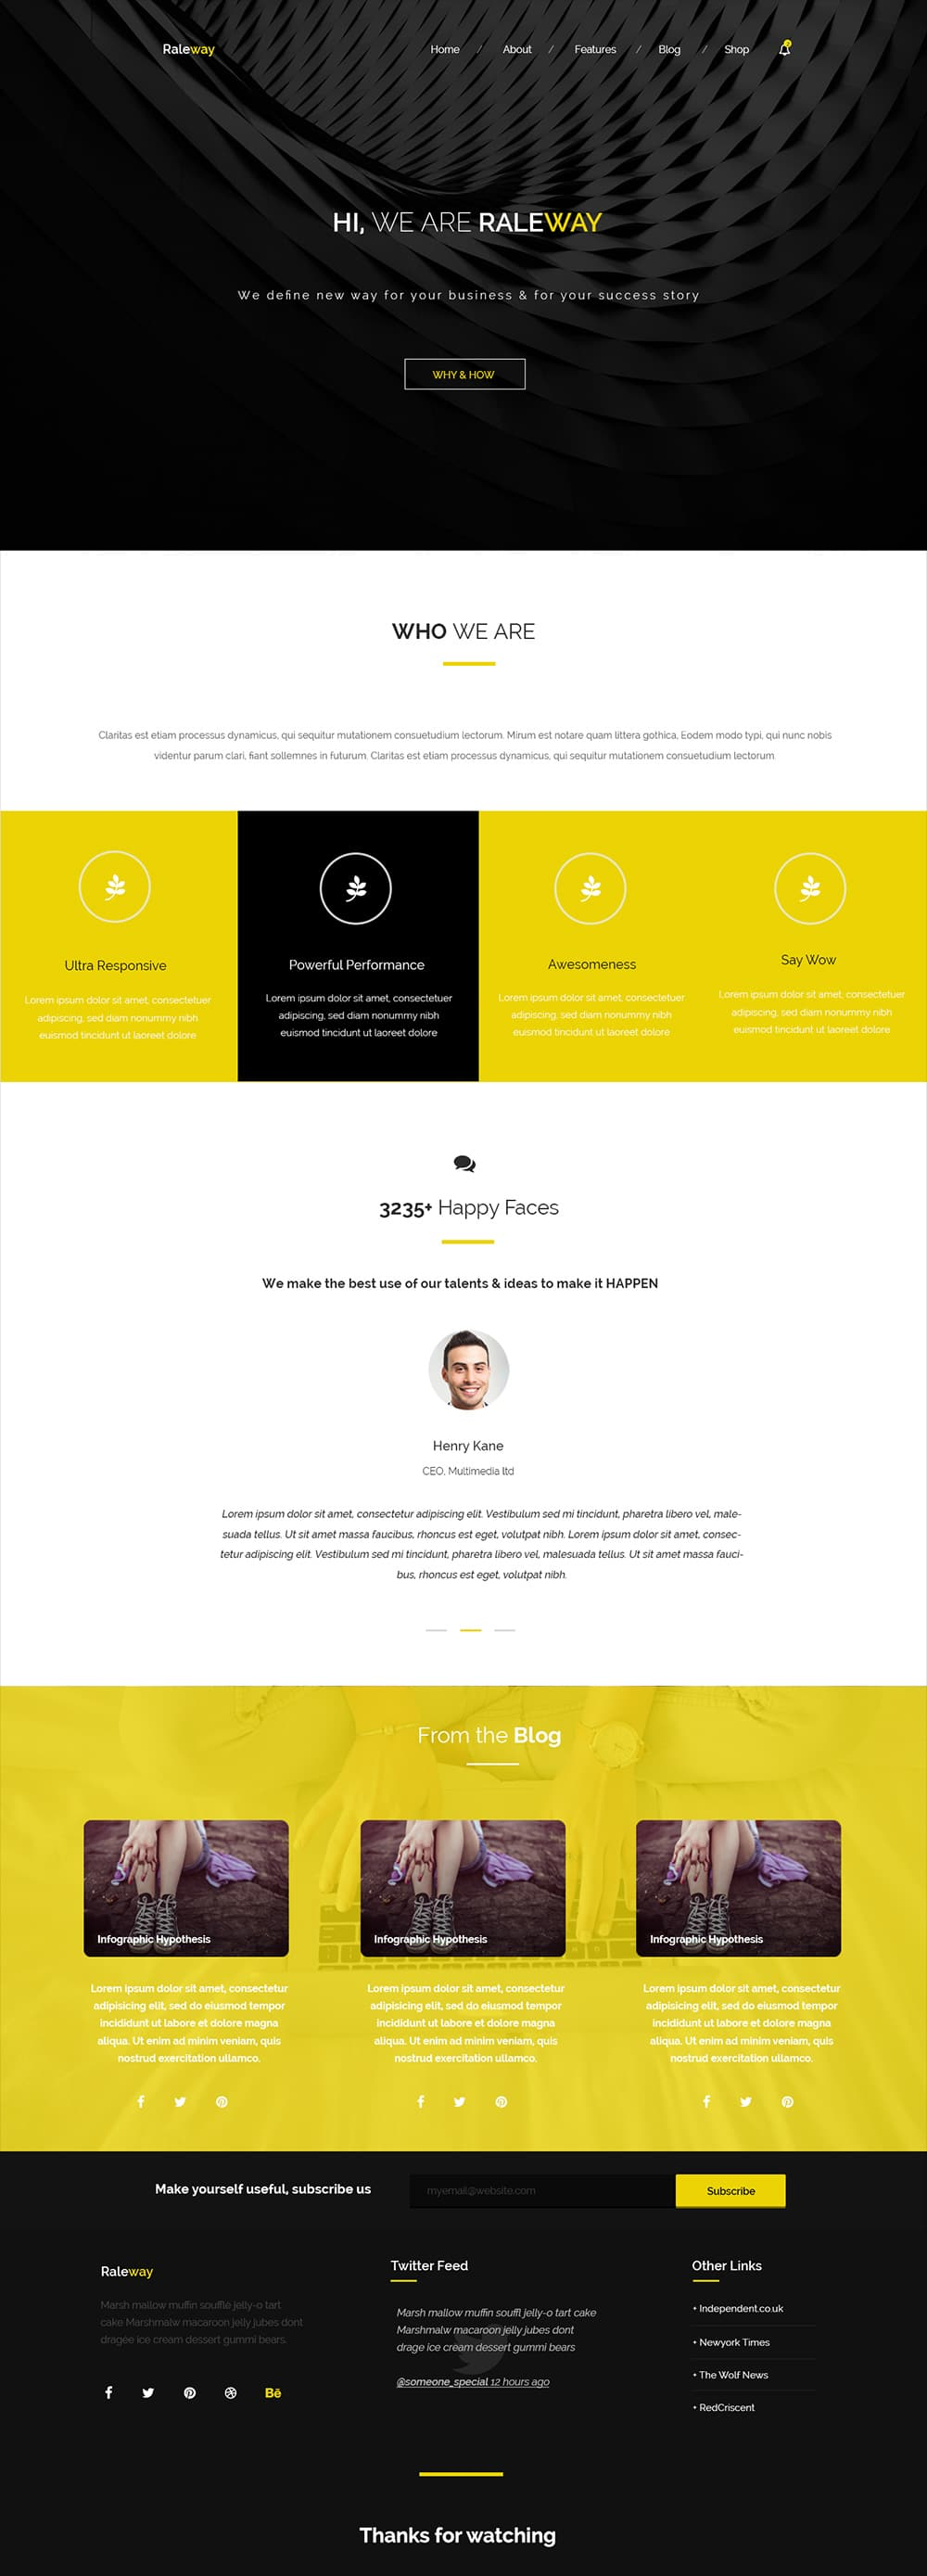 Raleway - Free PSD template for corporate agency